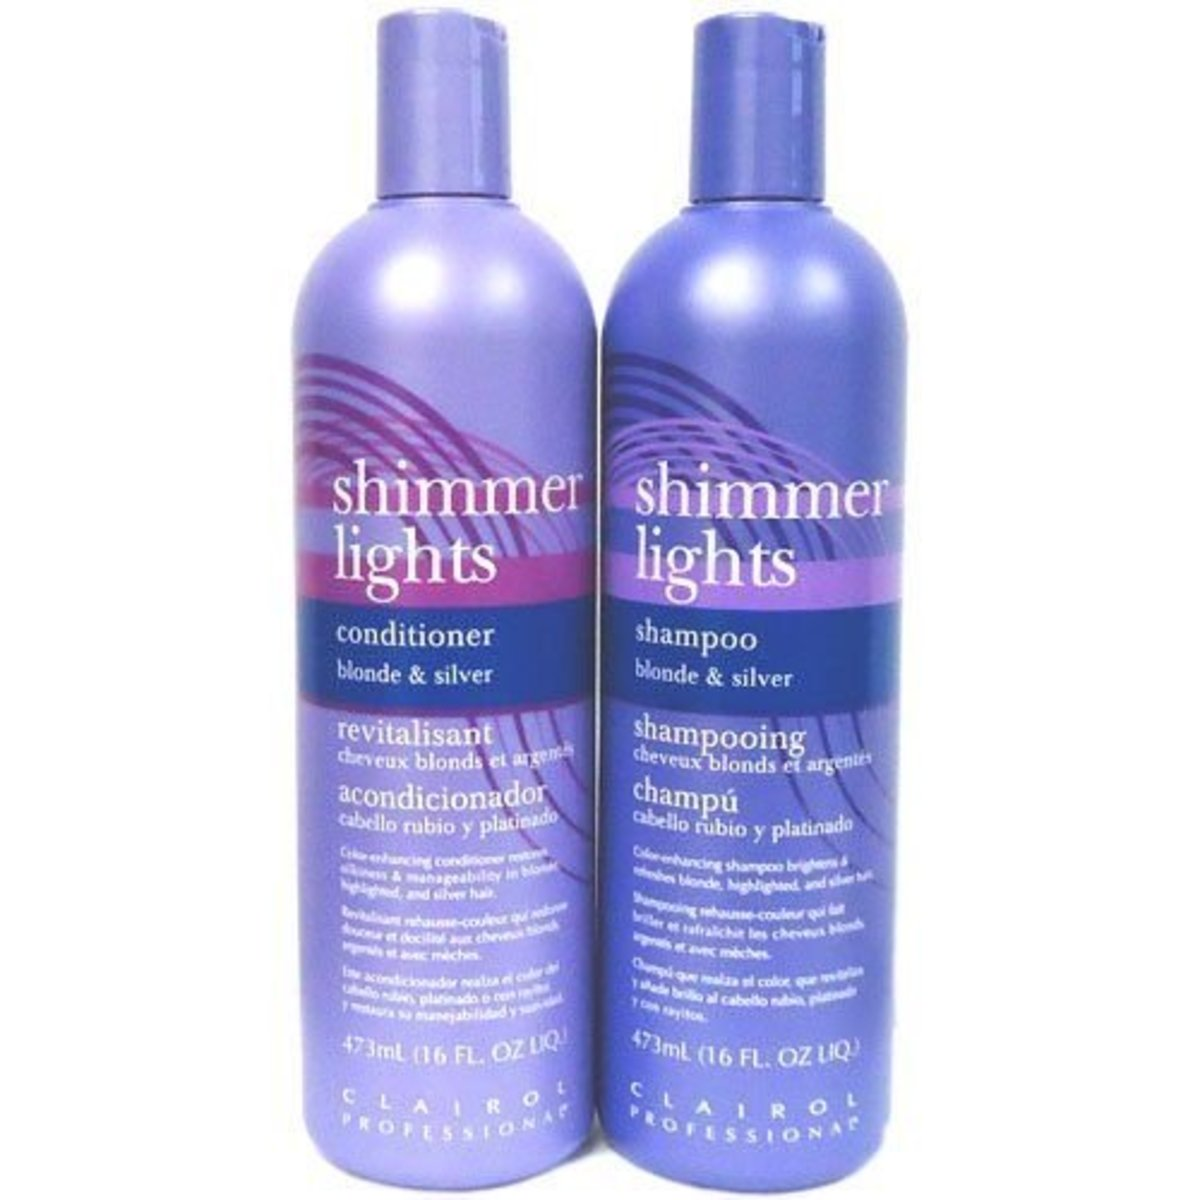 Shimmer Lights is a name brand purple shampoo.